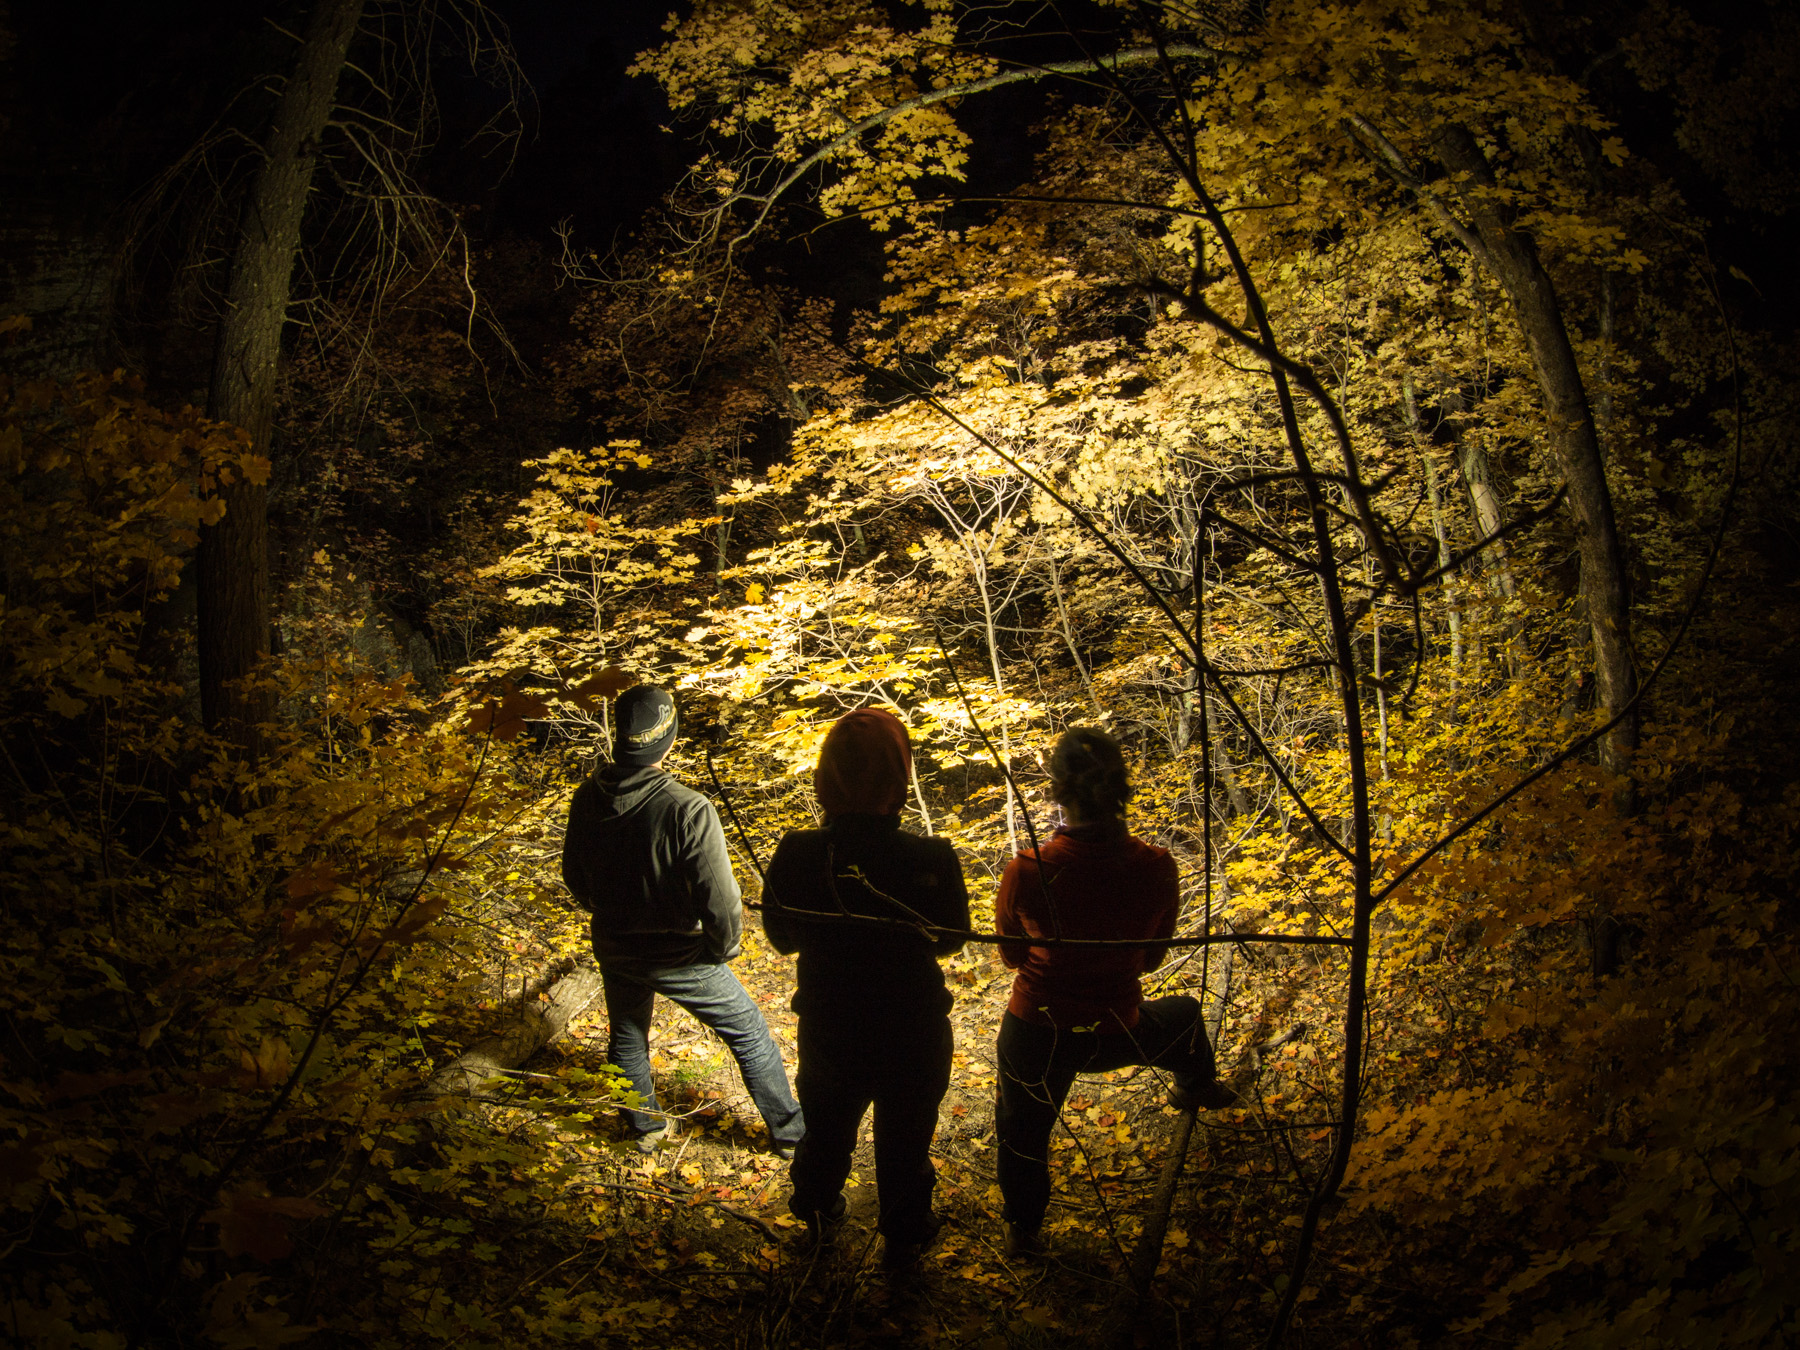 An amazing shot of us looking into the trees with our headlamps